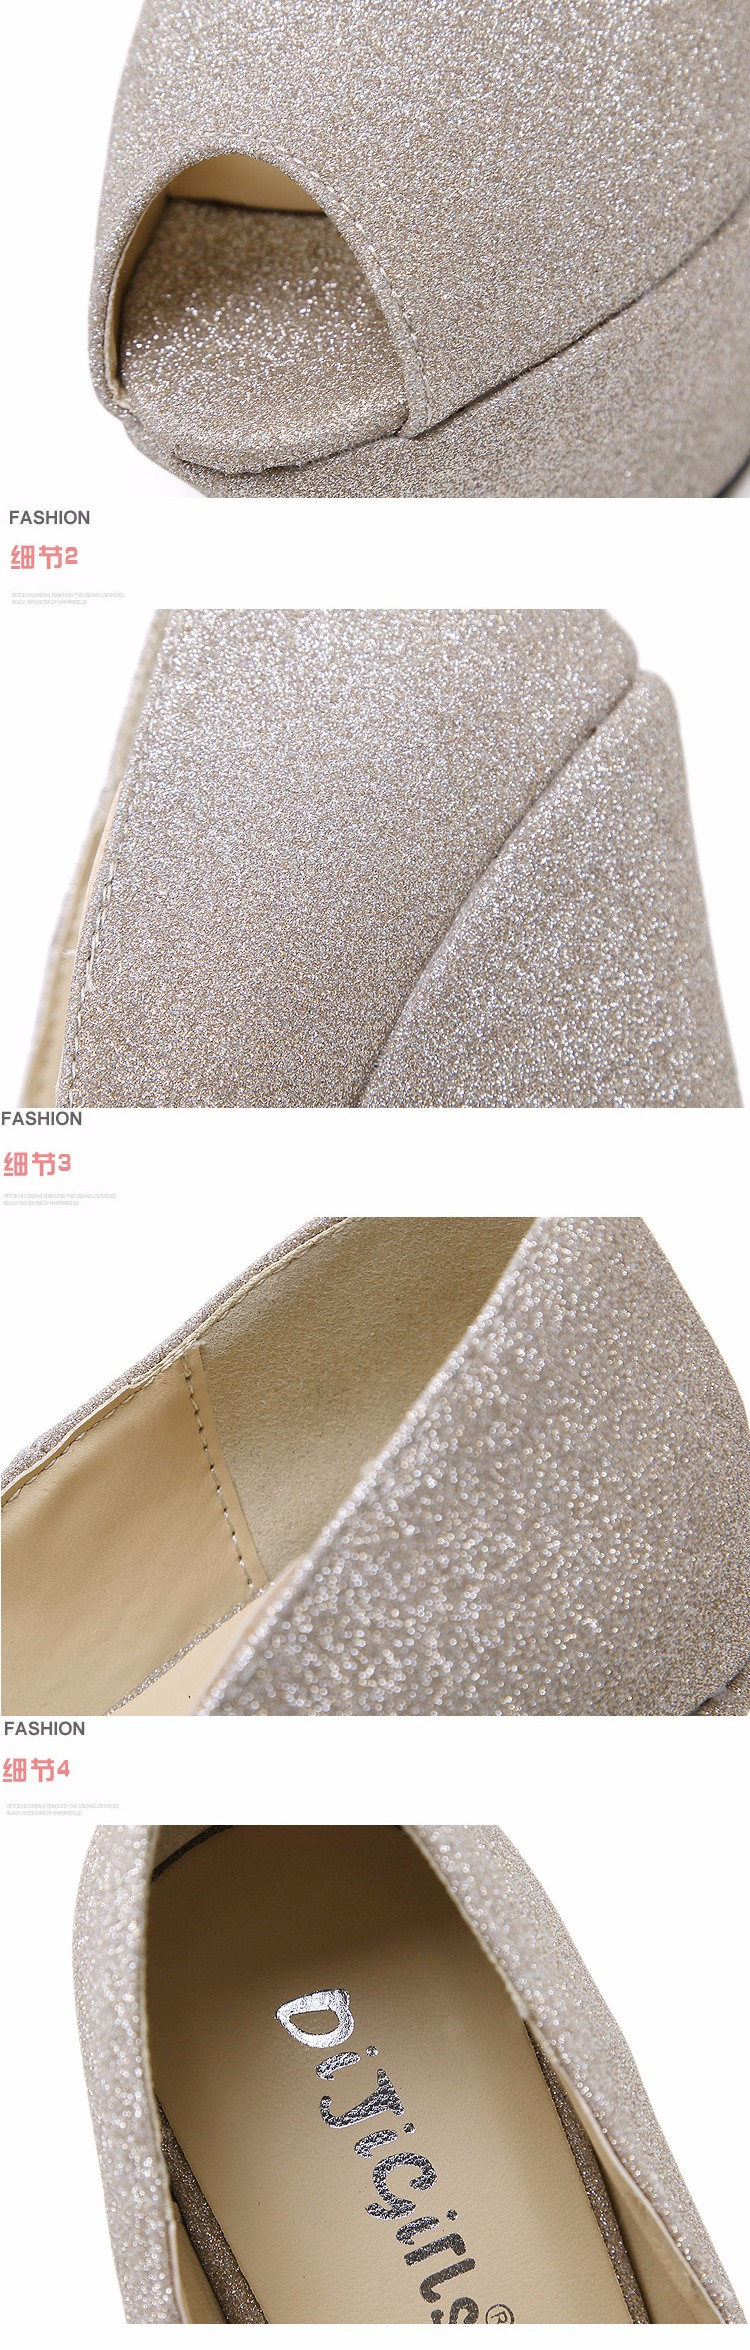 glitter shoes Platform shoes High Heels gold silver wedding Shoes peep toe High Heels Pumps Platform shoes Wedges pumps D925 6